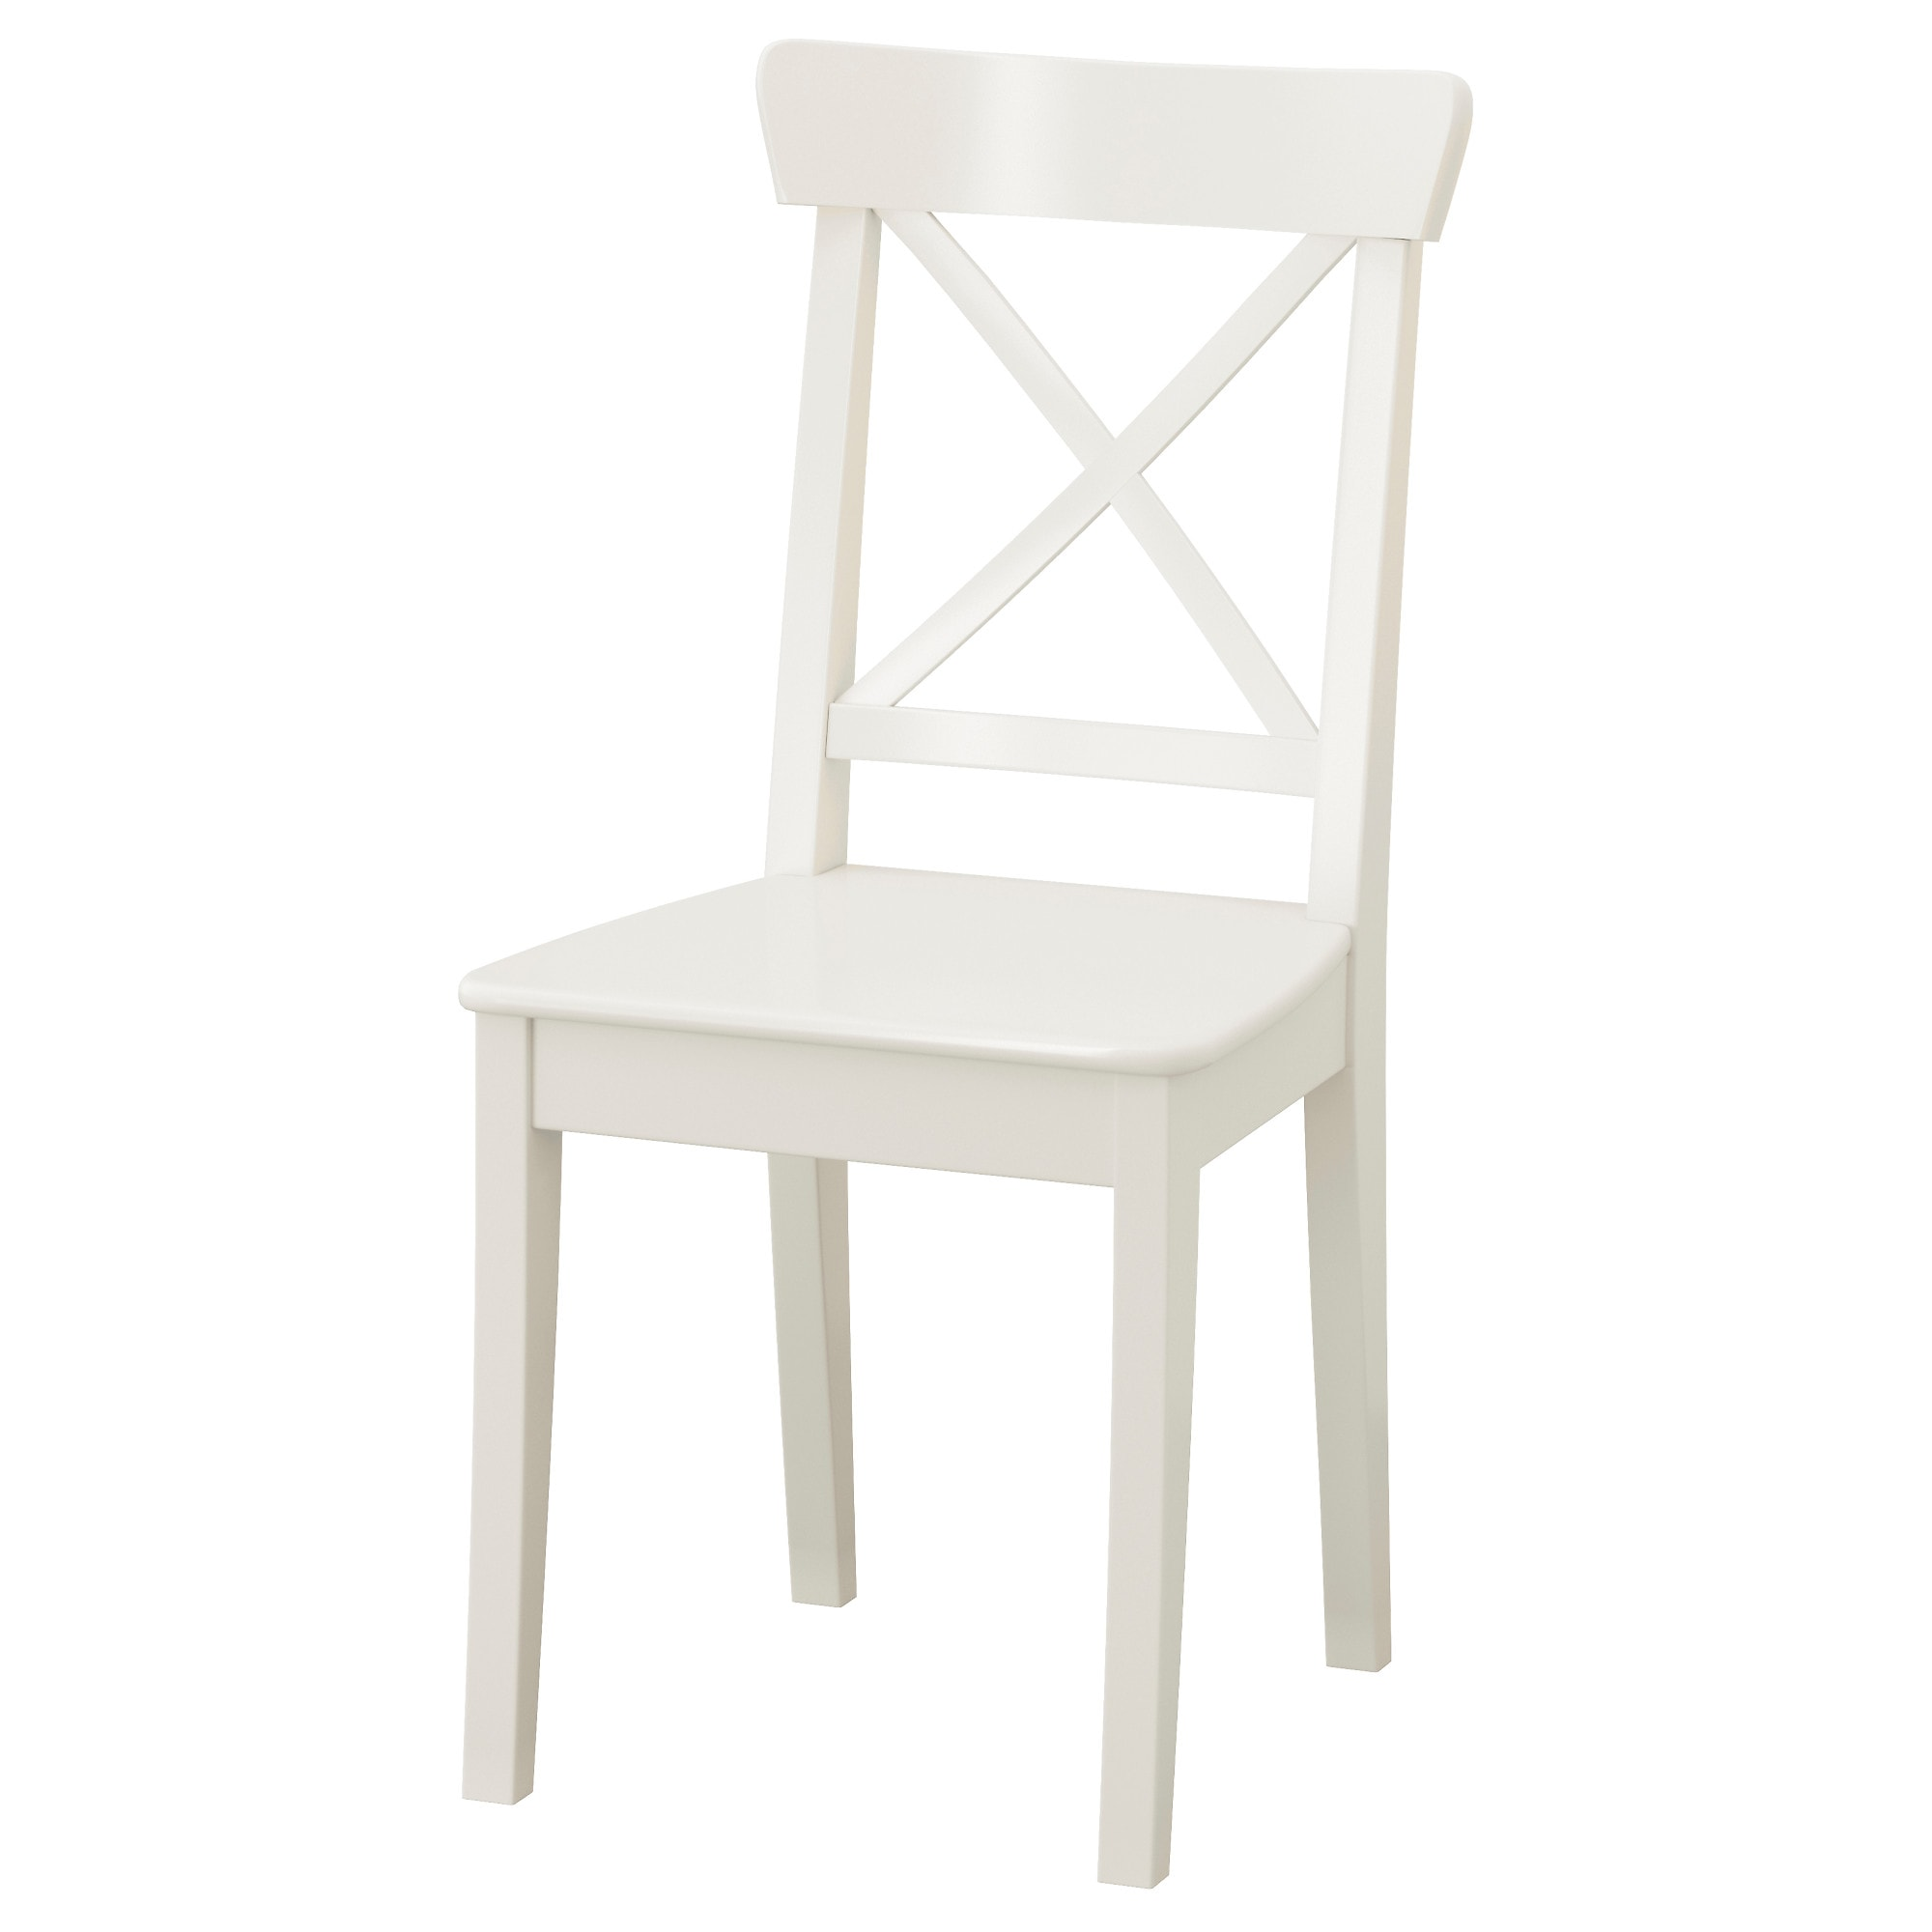 INGOLF chair  white Tested for  243 lb Width  16 7 8  Dining chairs   Dining chairs   Upholstered chairs   IKEA. High Back Dining Chairs Ikea. Home Design Ideas